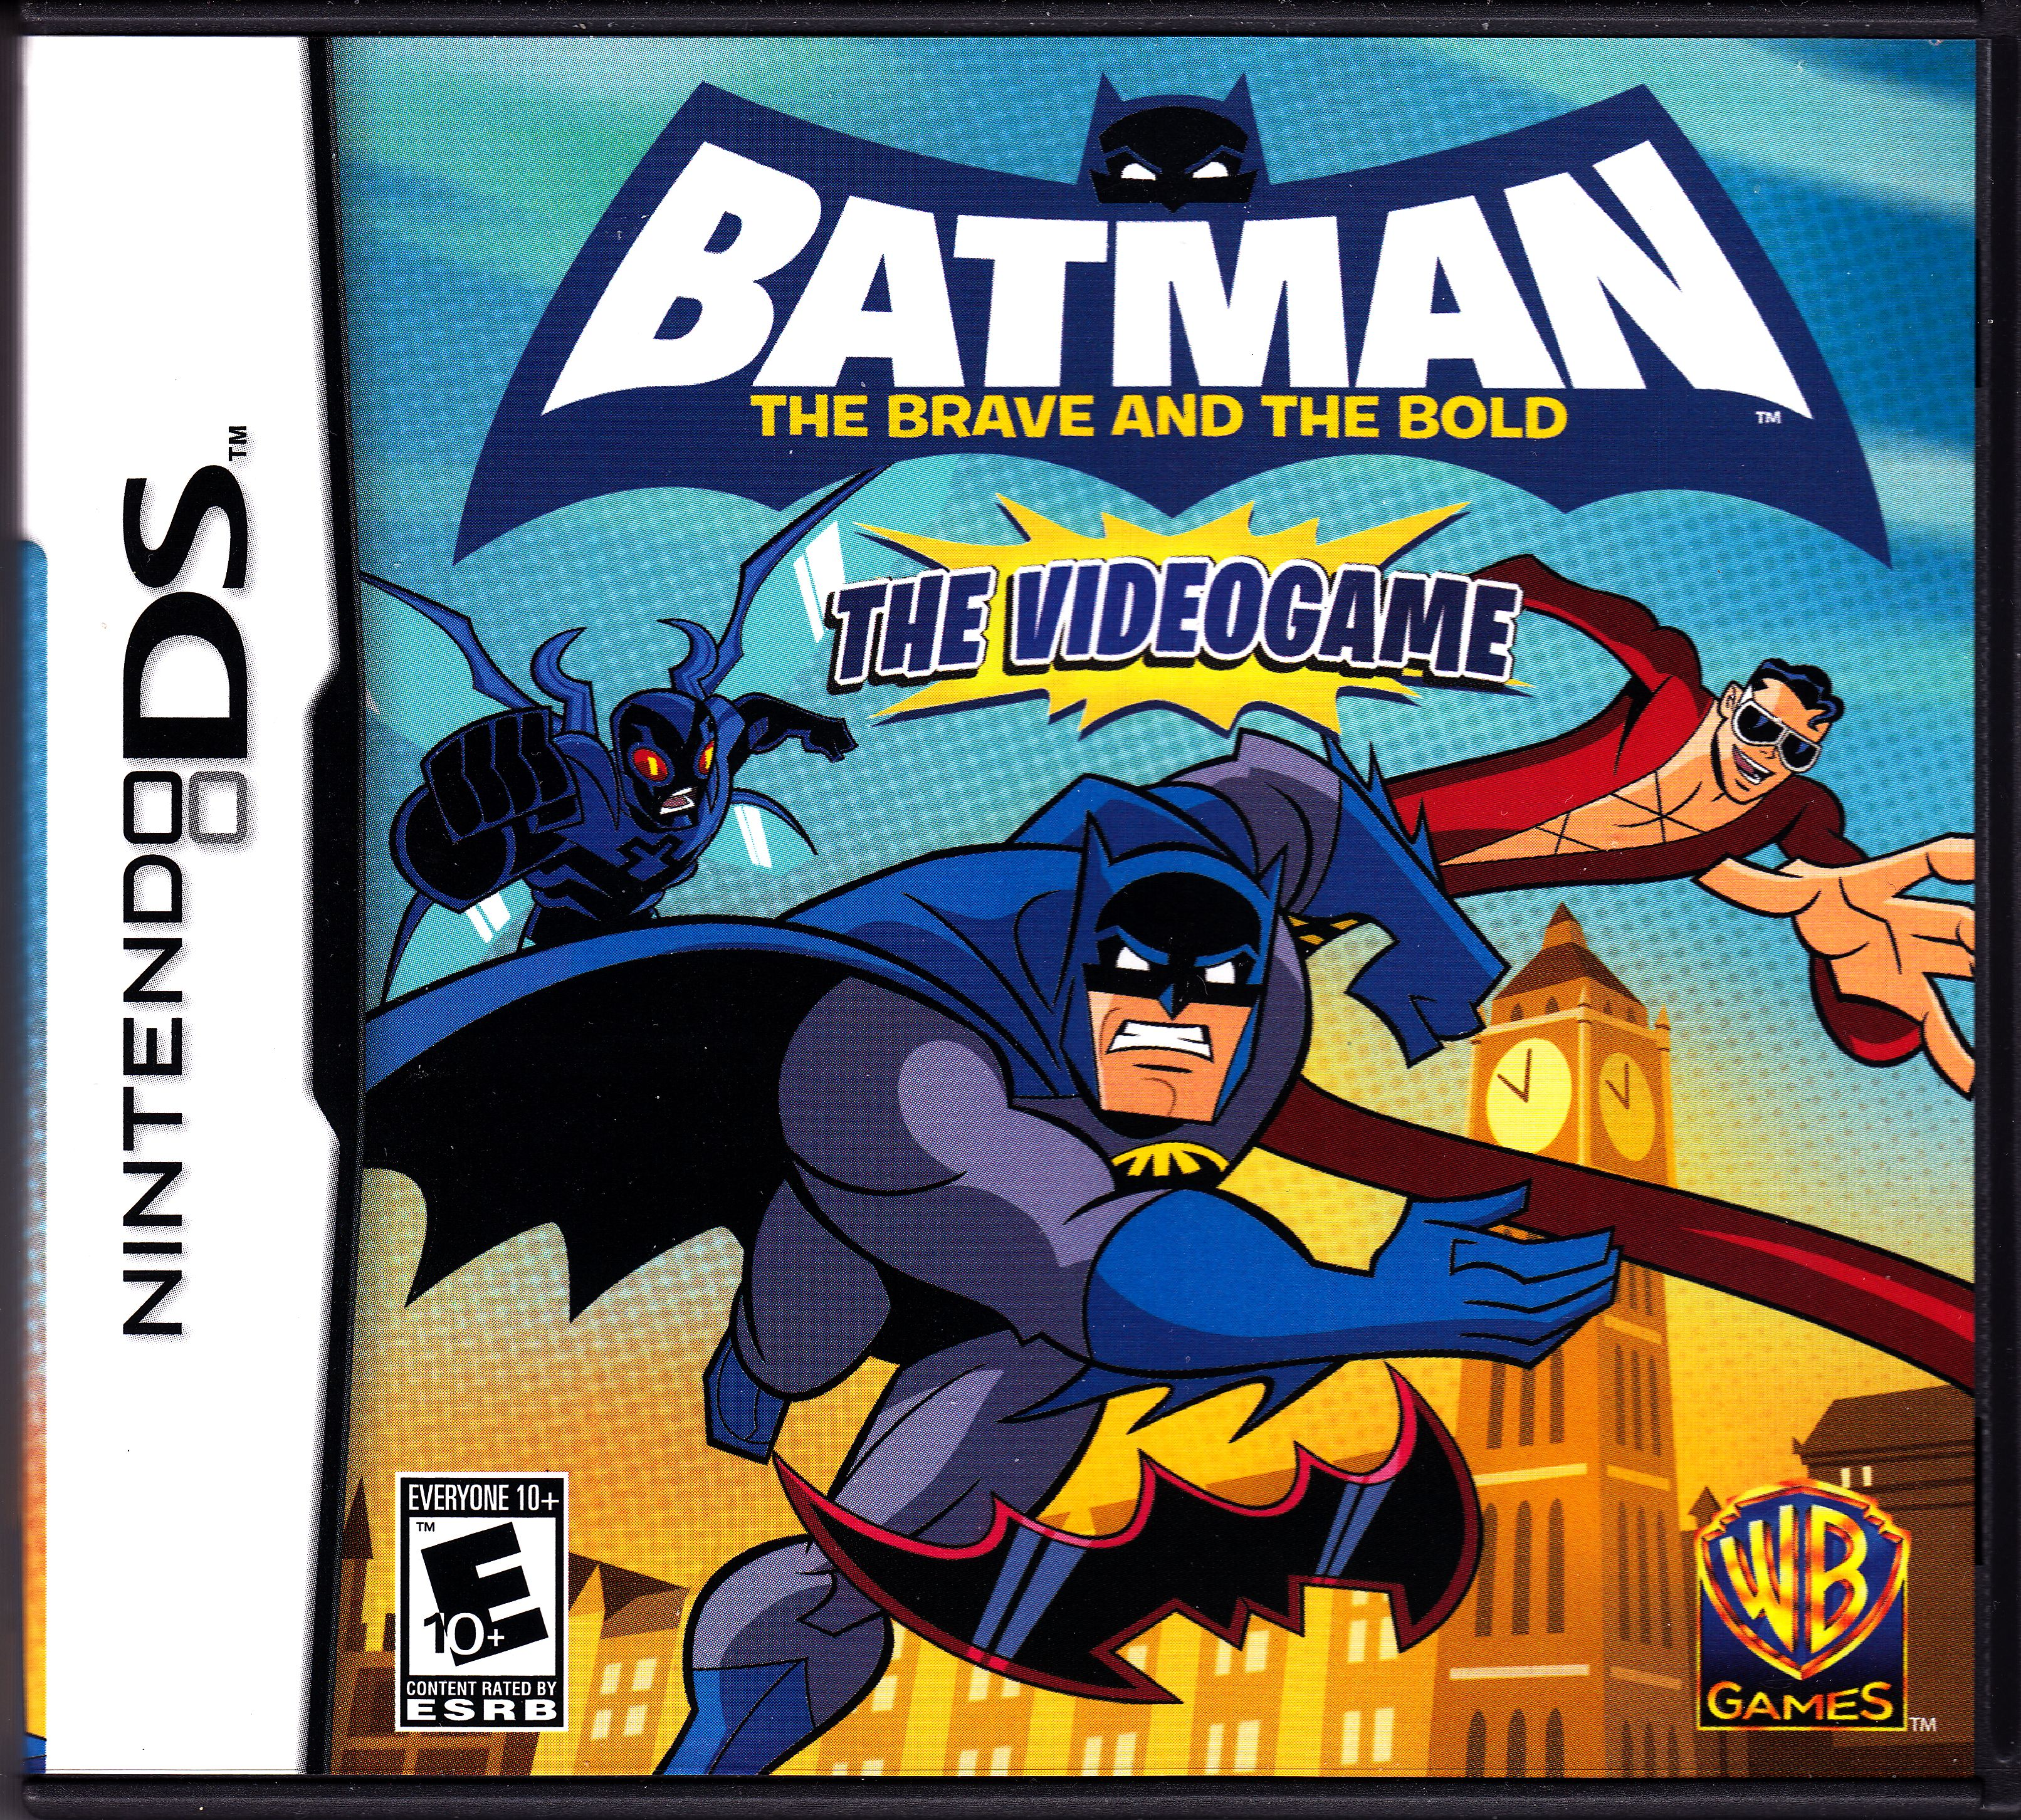 [NDS] 5187 - Batman The Brave and The Bold (2008) [ENG / PAL]